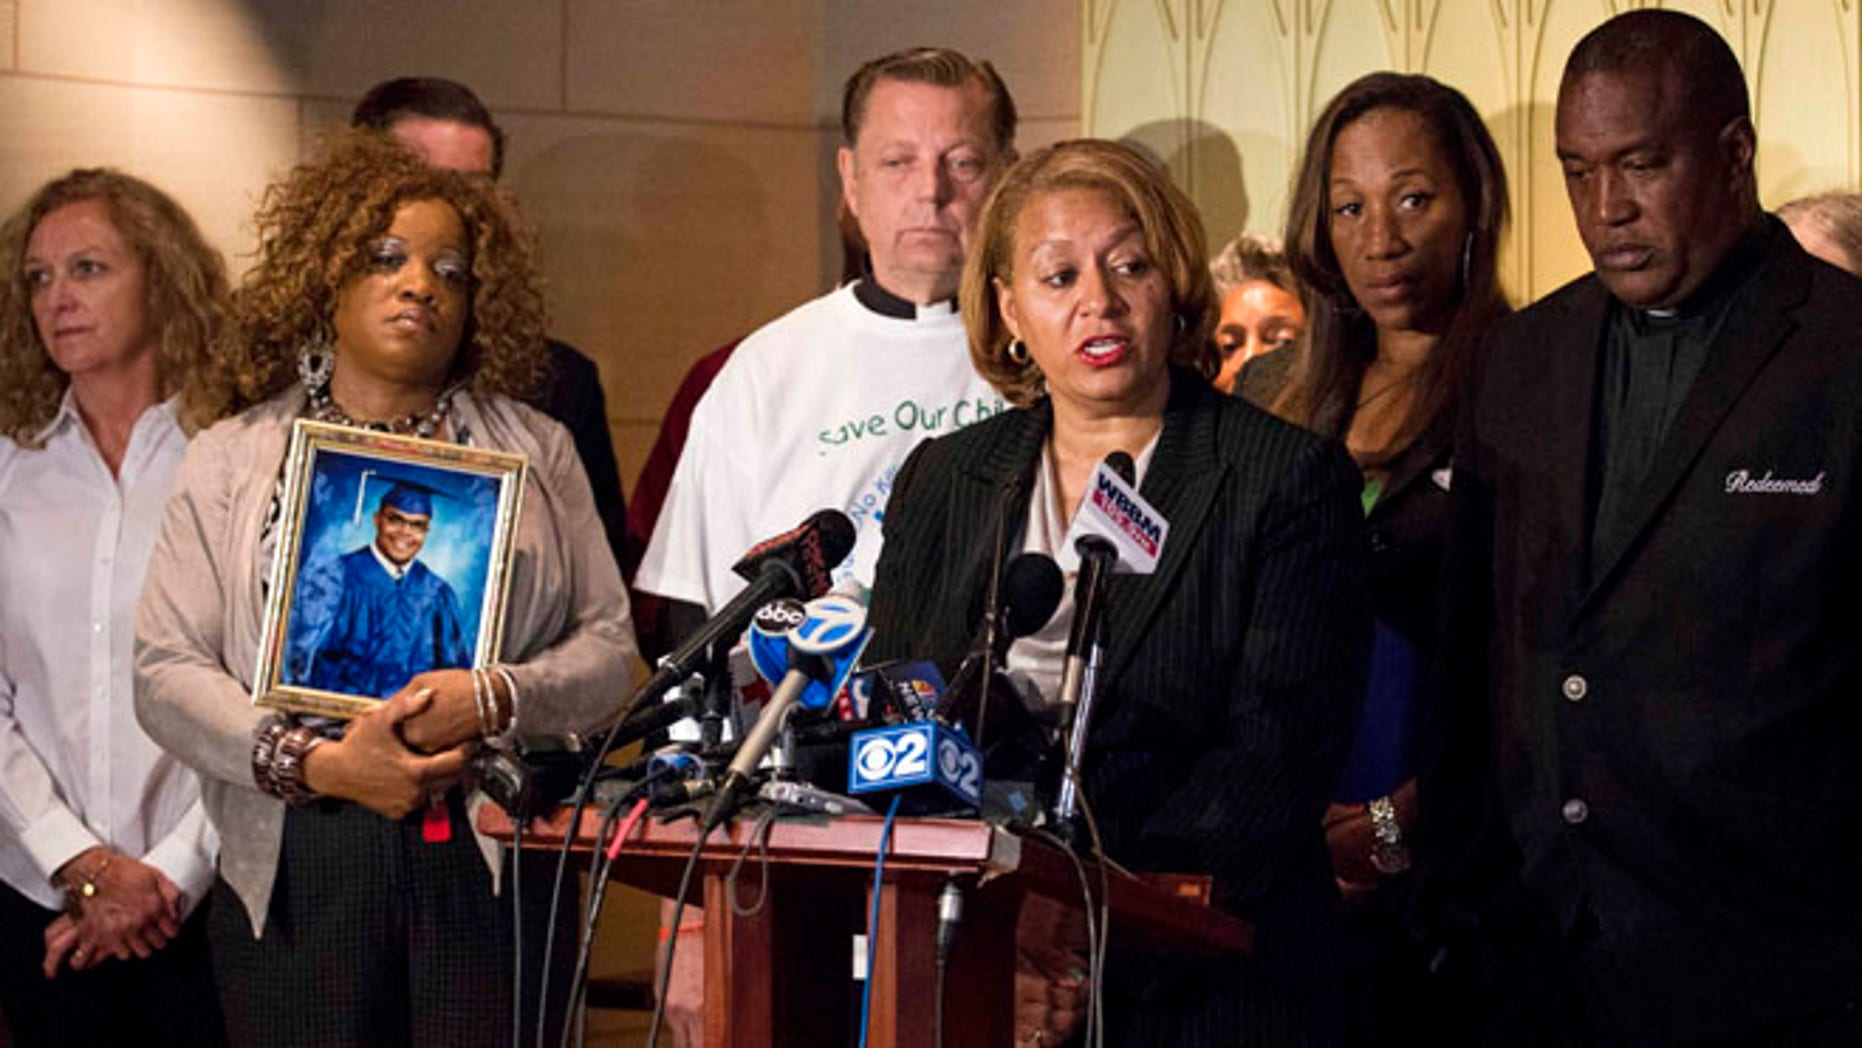 July 7, 2015: Annette Nance-Holt, who lost her 16-year-old son, Blair, to gun-violence in 2007, speaks at a press conference in Chicago, after lawyers for the Coalition for Safe Chicago Communities filed a lawsuit in Cook County suing three suburbs for not adequately monitoring gun stores they believe are the source of weapons that have filtered into the city.